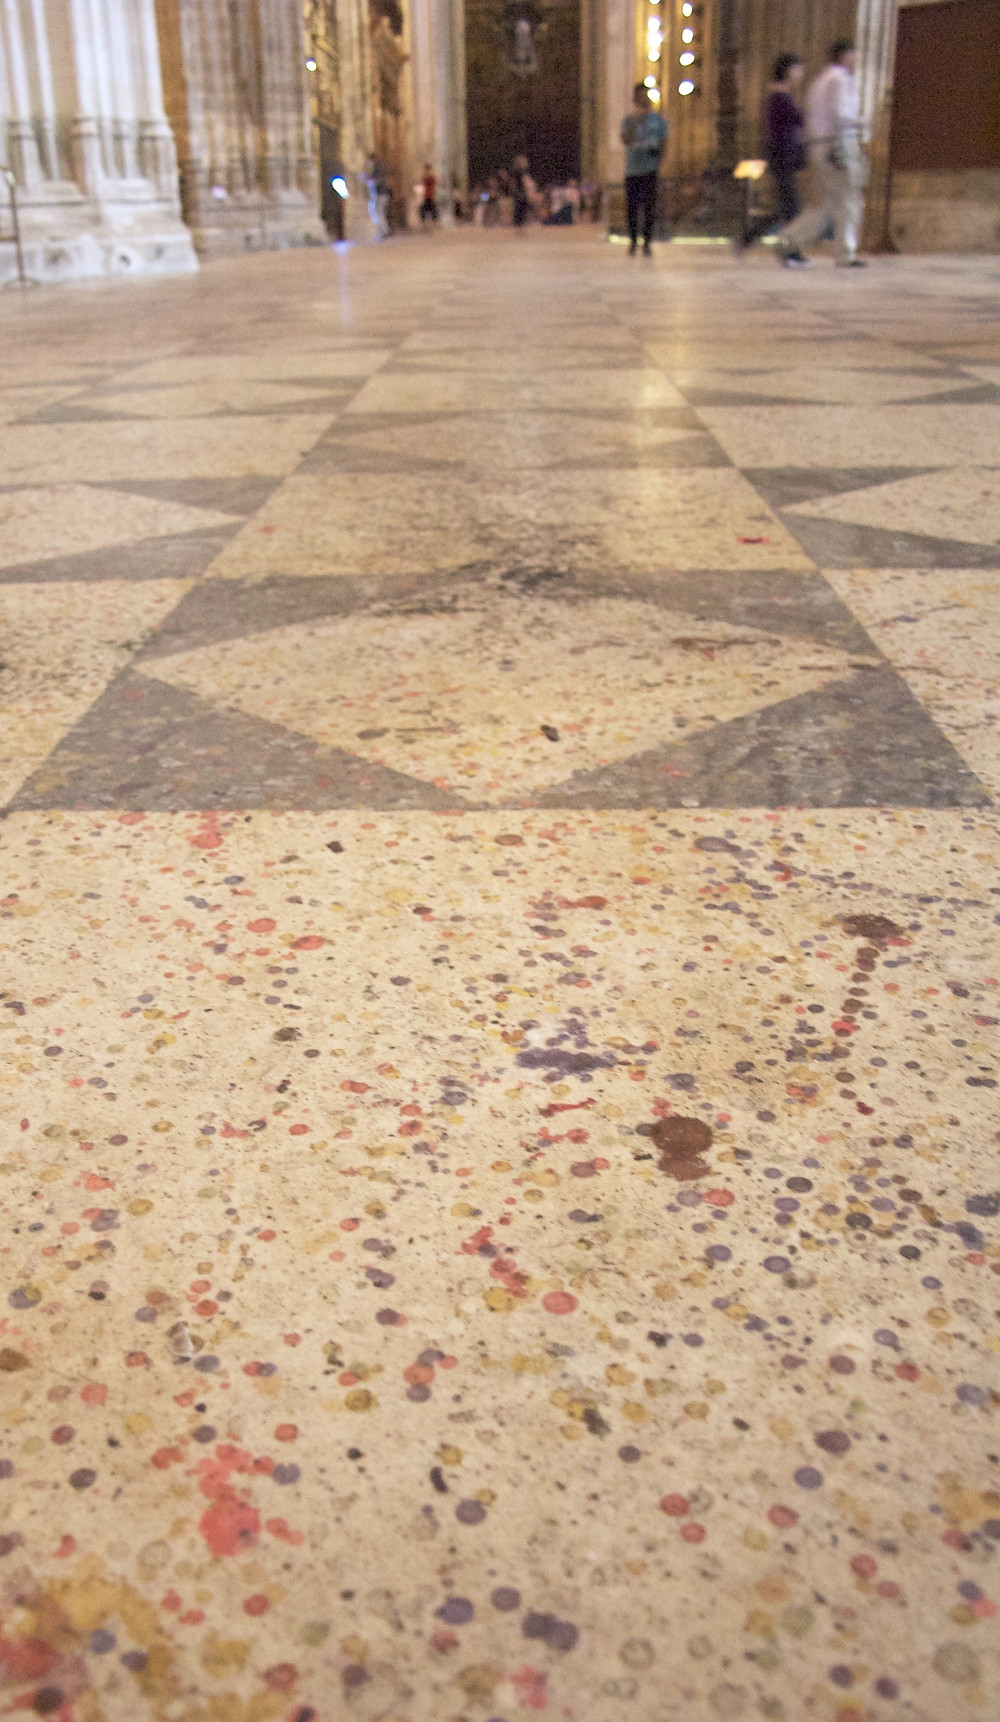 The wax dippings on the floor of the Cathedral in Seville